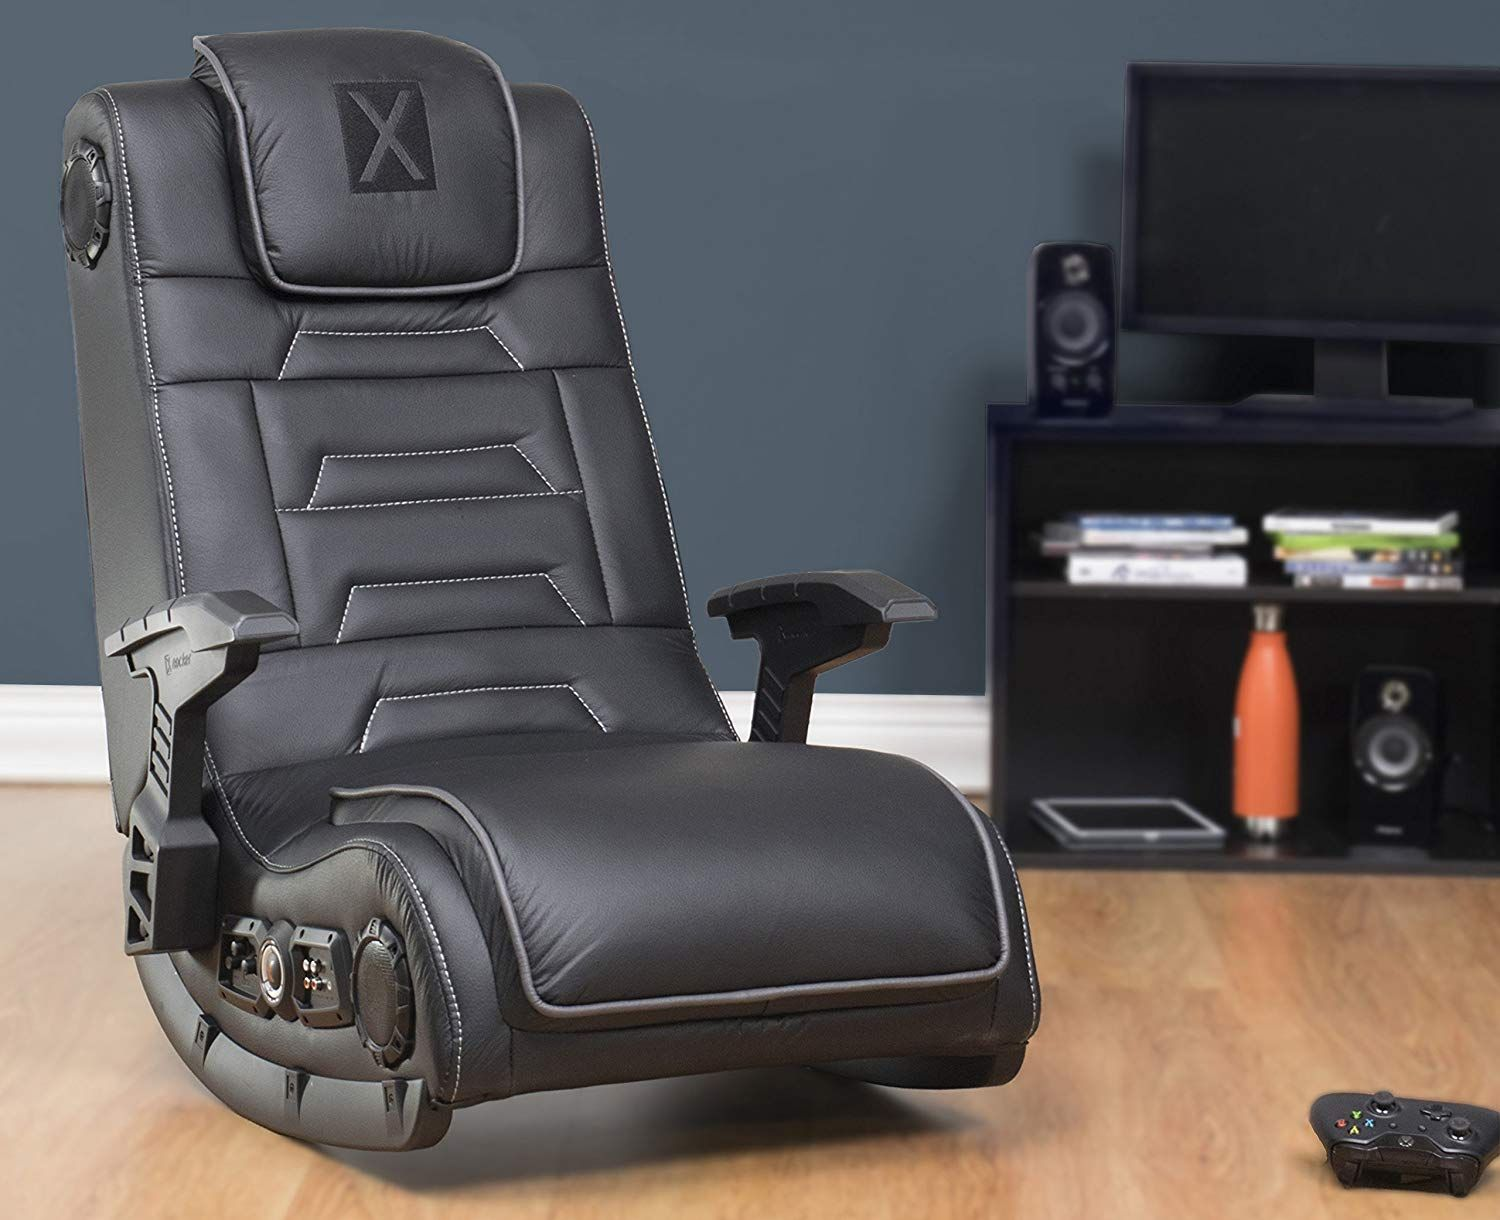 5 Best Gaming Chairs Under 200 in 2020 For Game Crazier